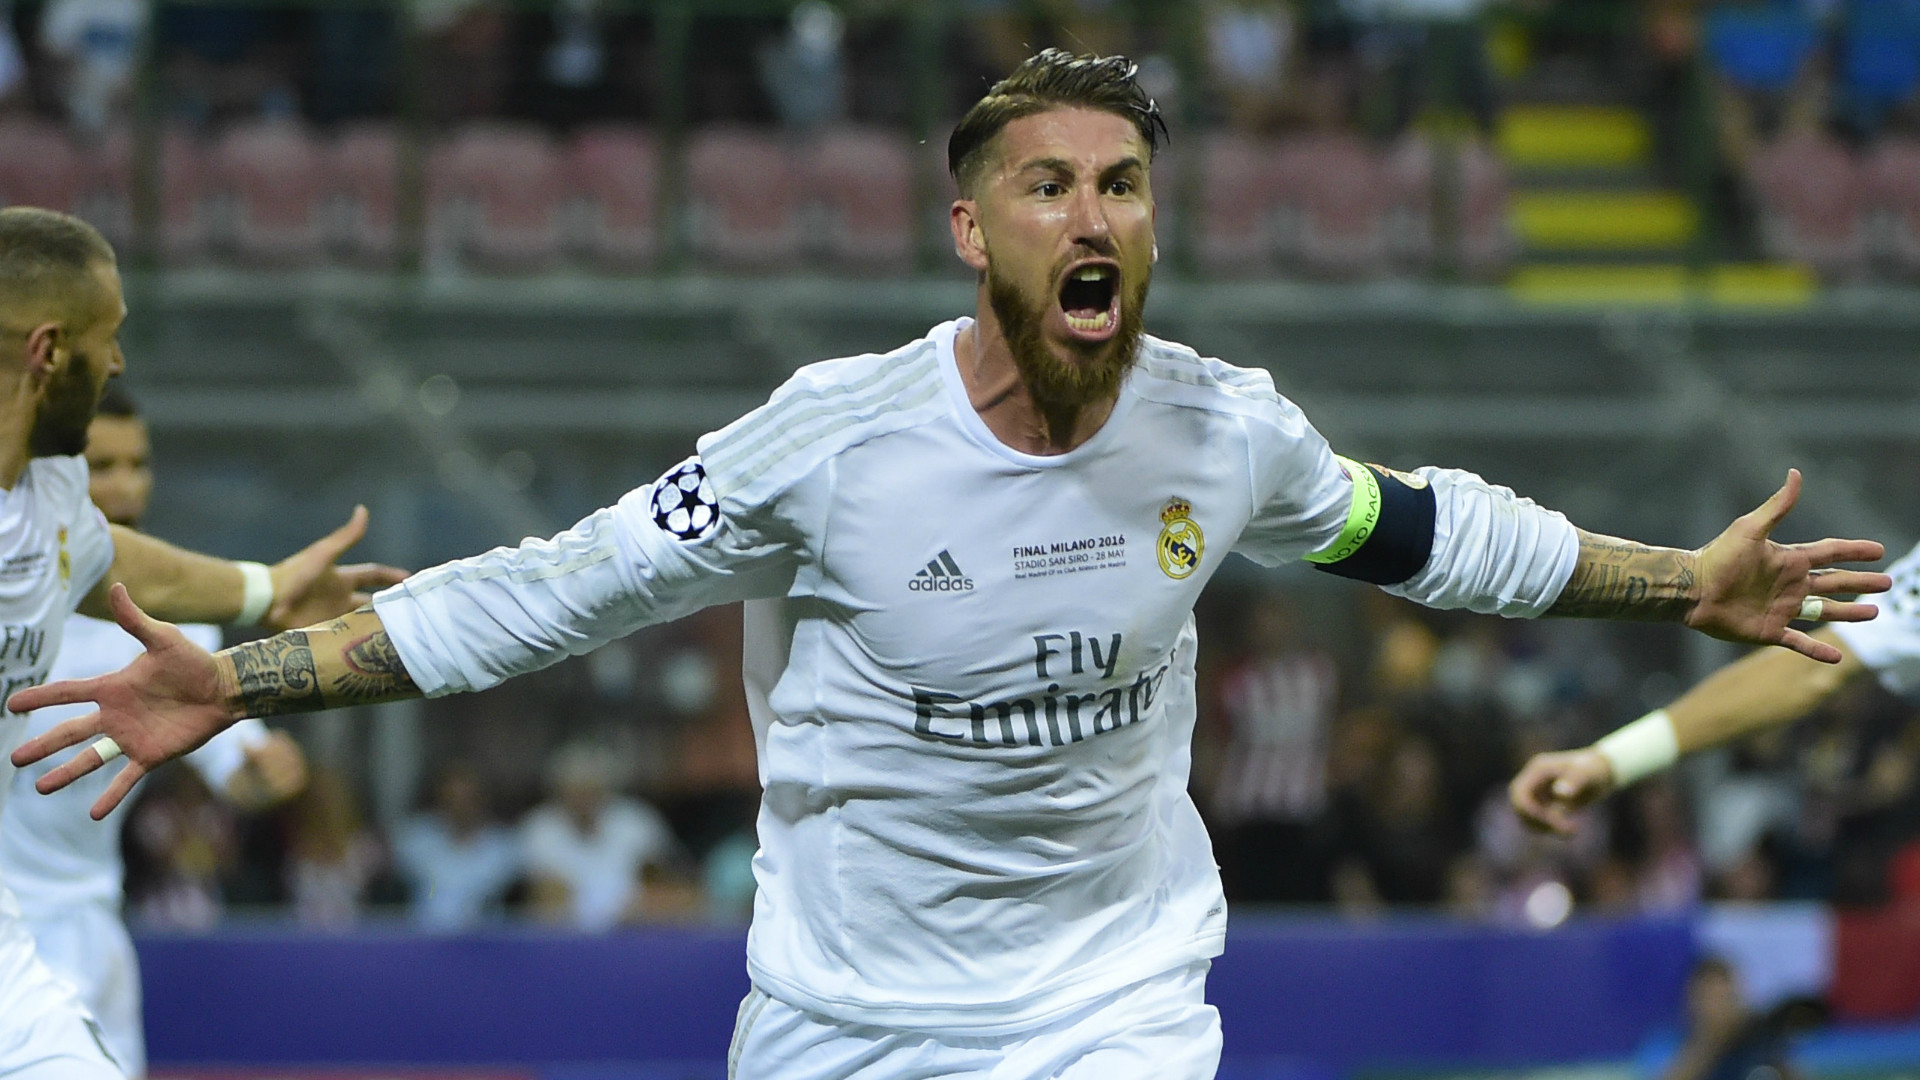 1920x1080 UCL FINAL REAL MADRID ATLETICO SERGIO RAMOS 28052016